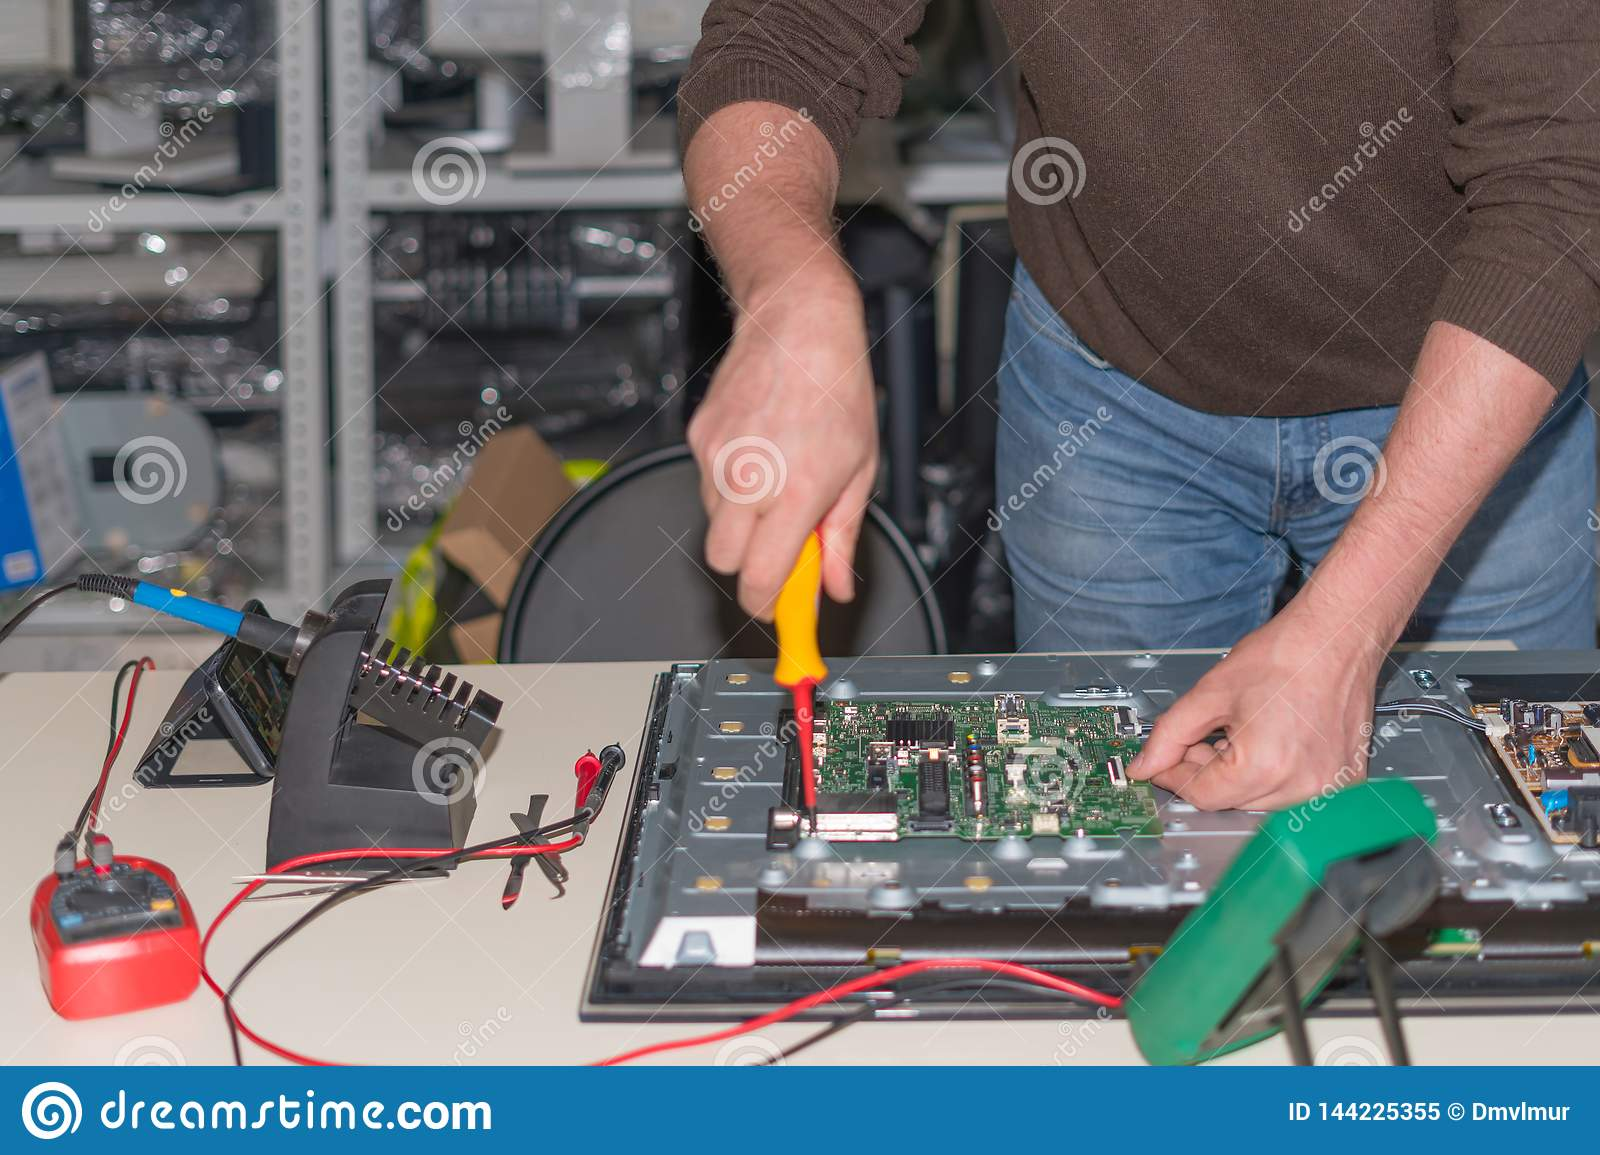 Disassembly and repair of modern LCD TV. Dismantling of the motherboard for diagnostics